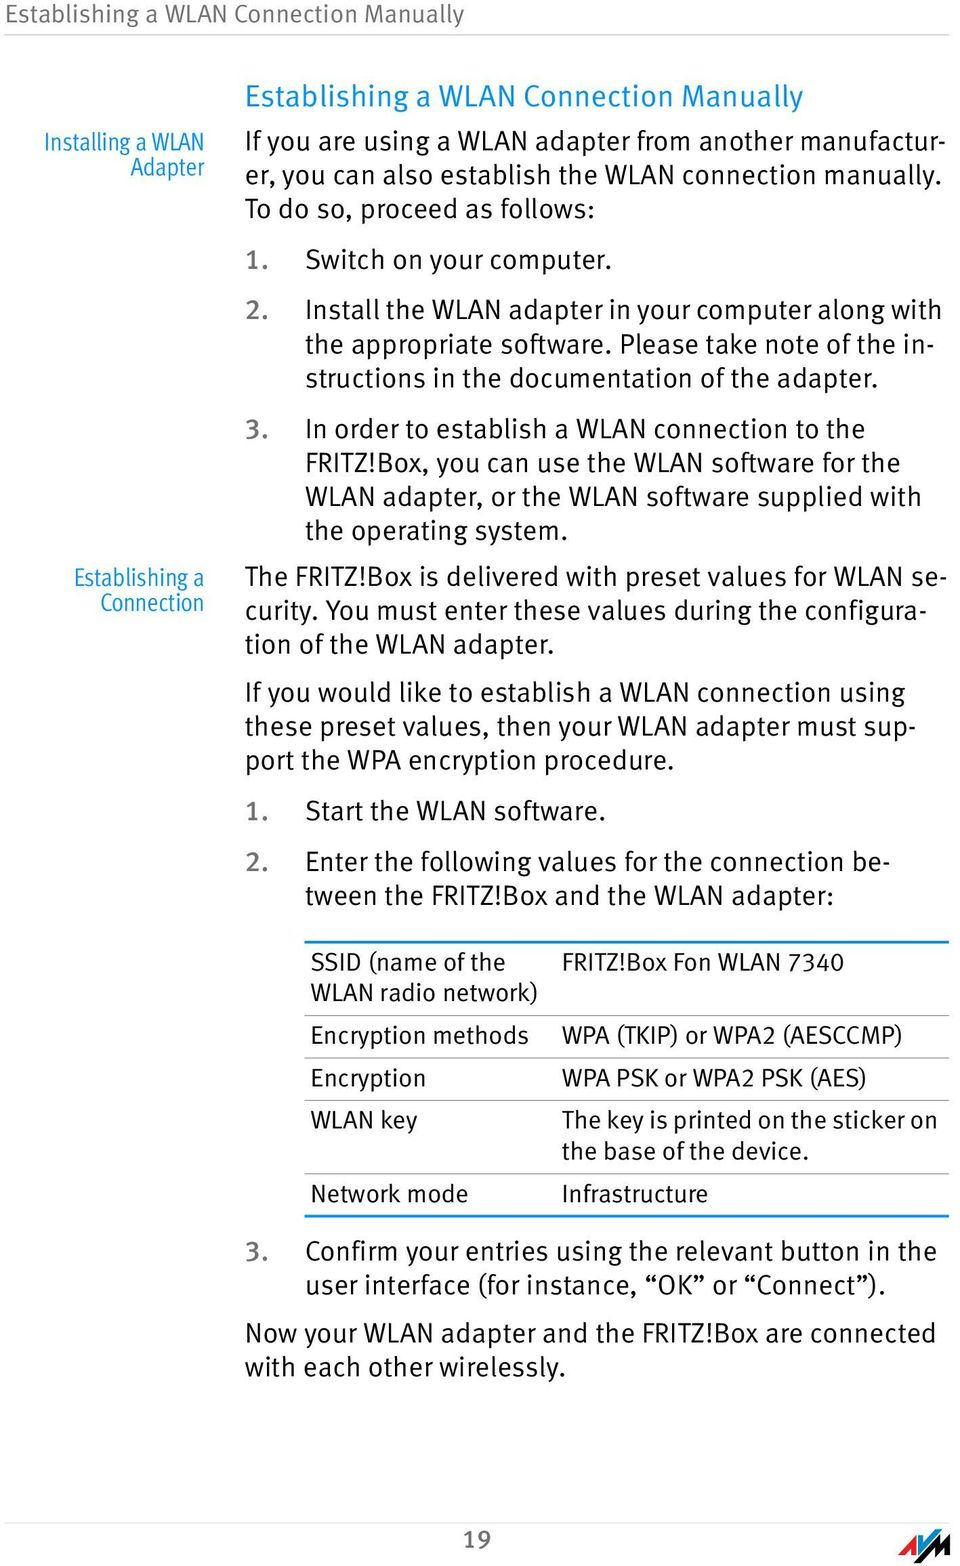 Please take note of the instructions in the documentation of the adapter. 3. In order to establish a WLAN connection to the FRITZ!